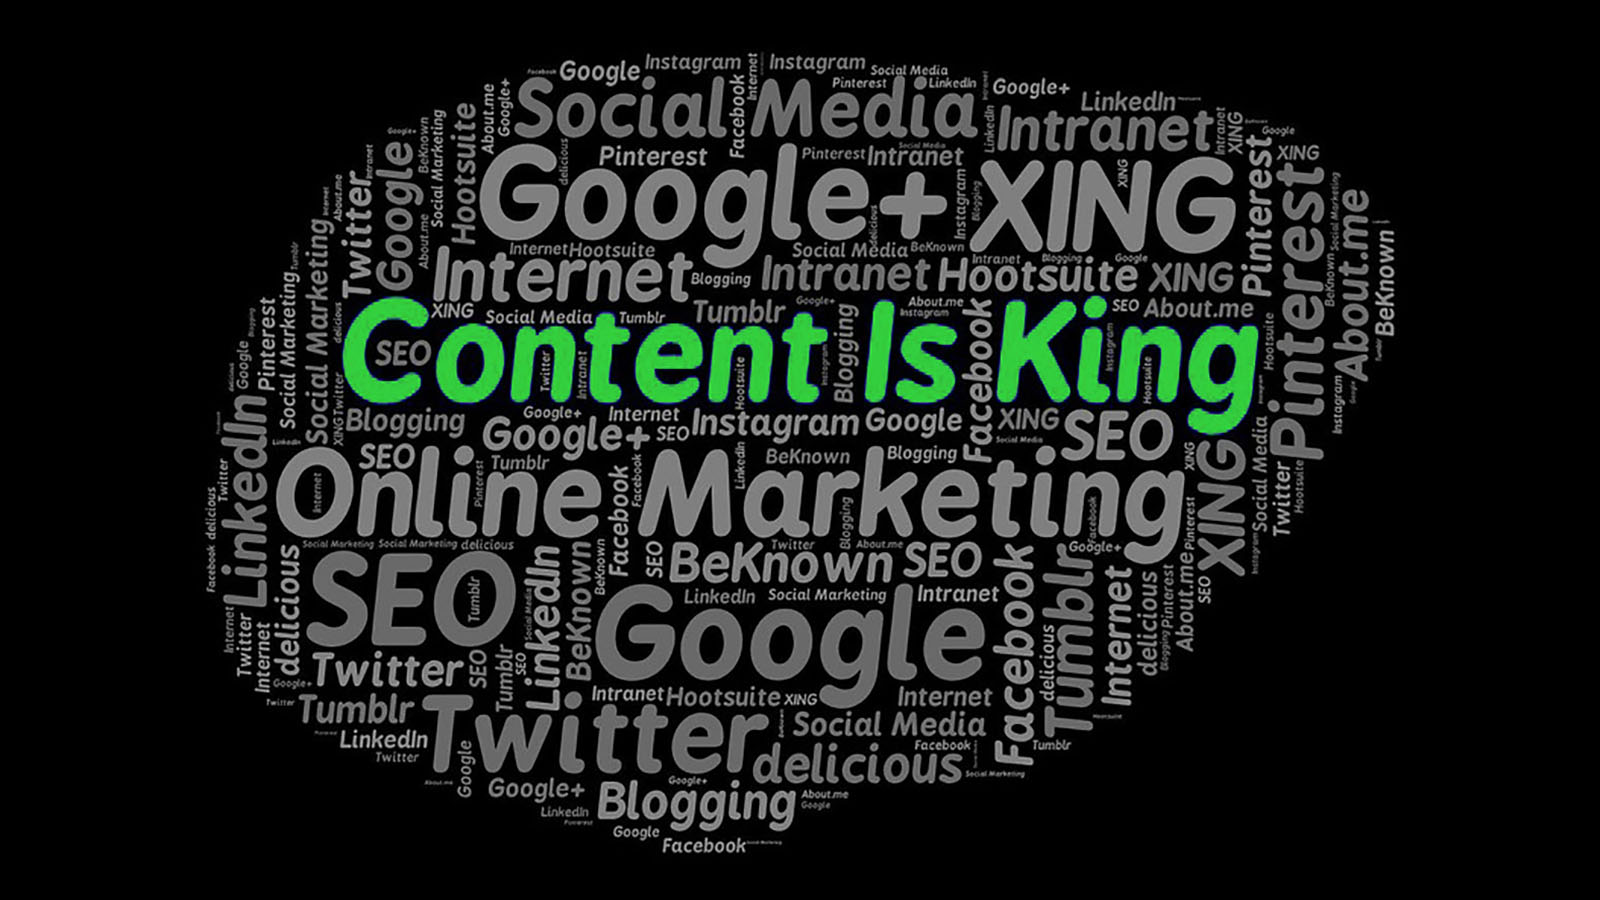 A word cloud containing many key words to do with content. In the centre in a more prominent format are the words: 'Content is King'.